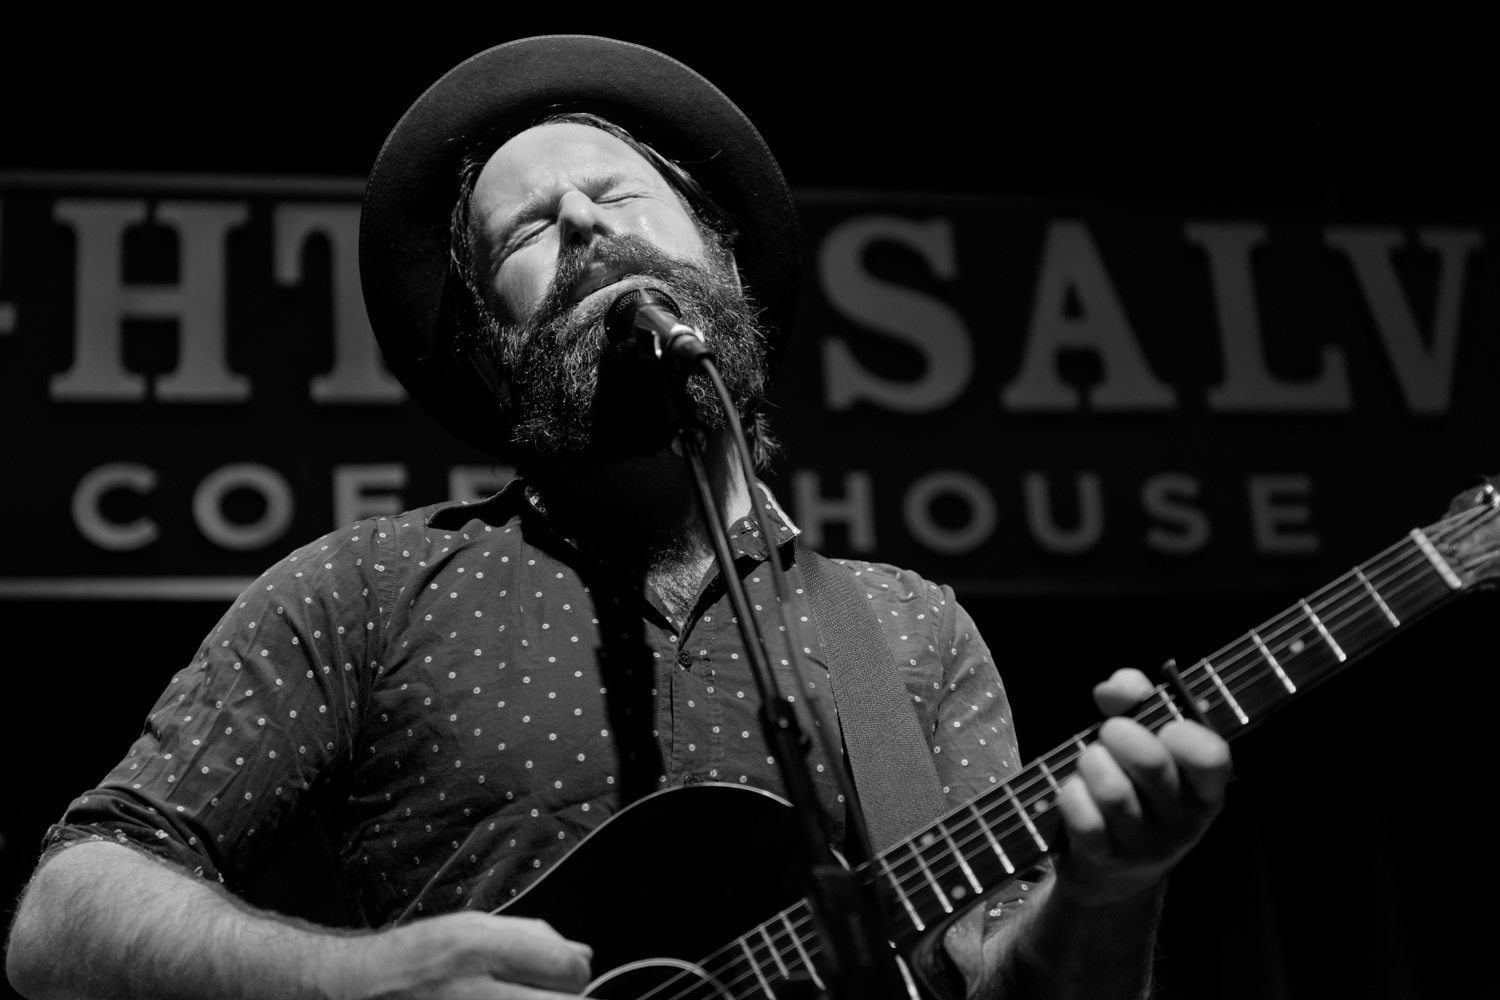 20190801 094 Freight & Salvage - The Waifs by Jon Bauer.jpg